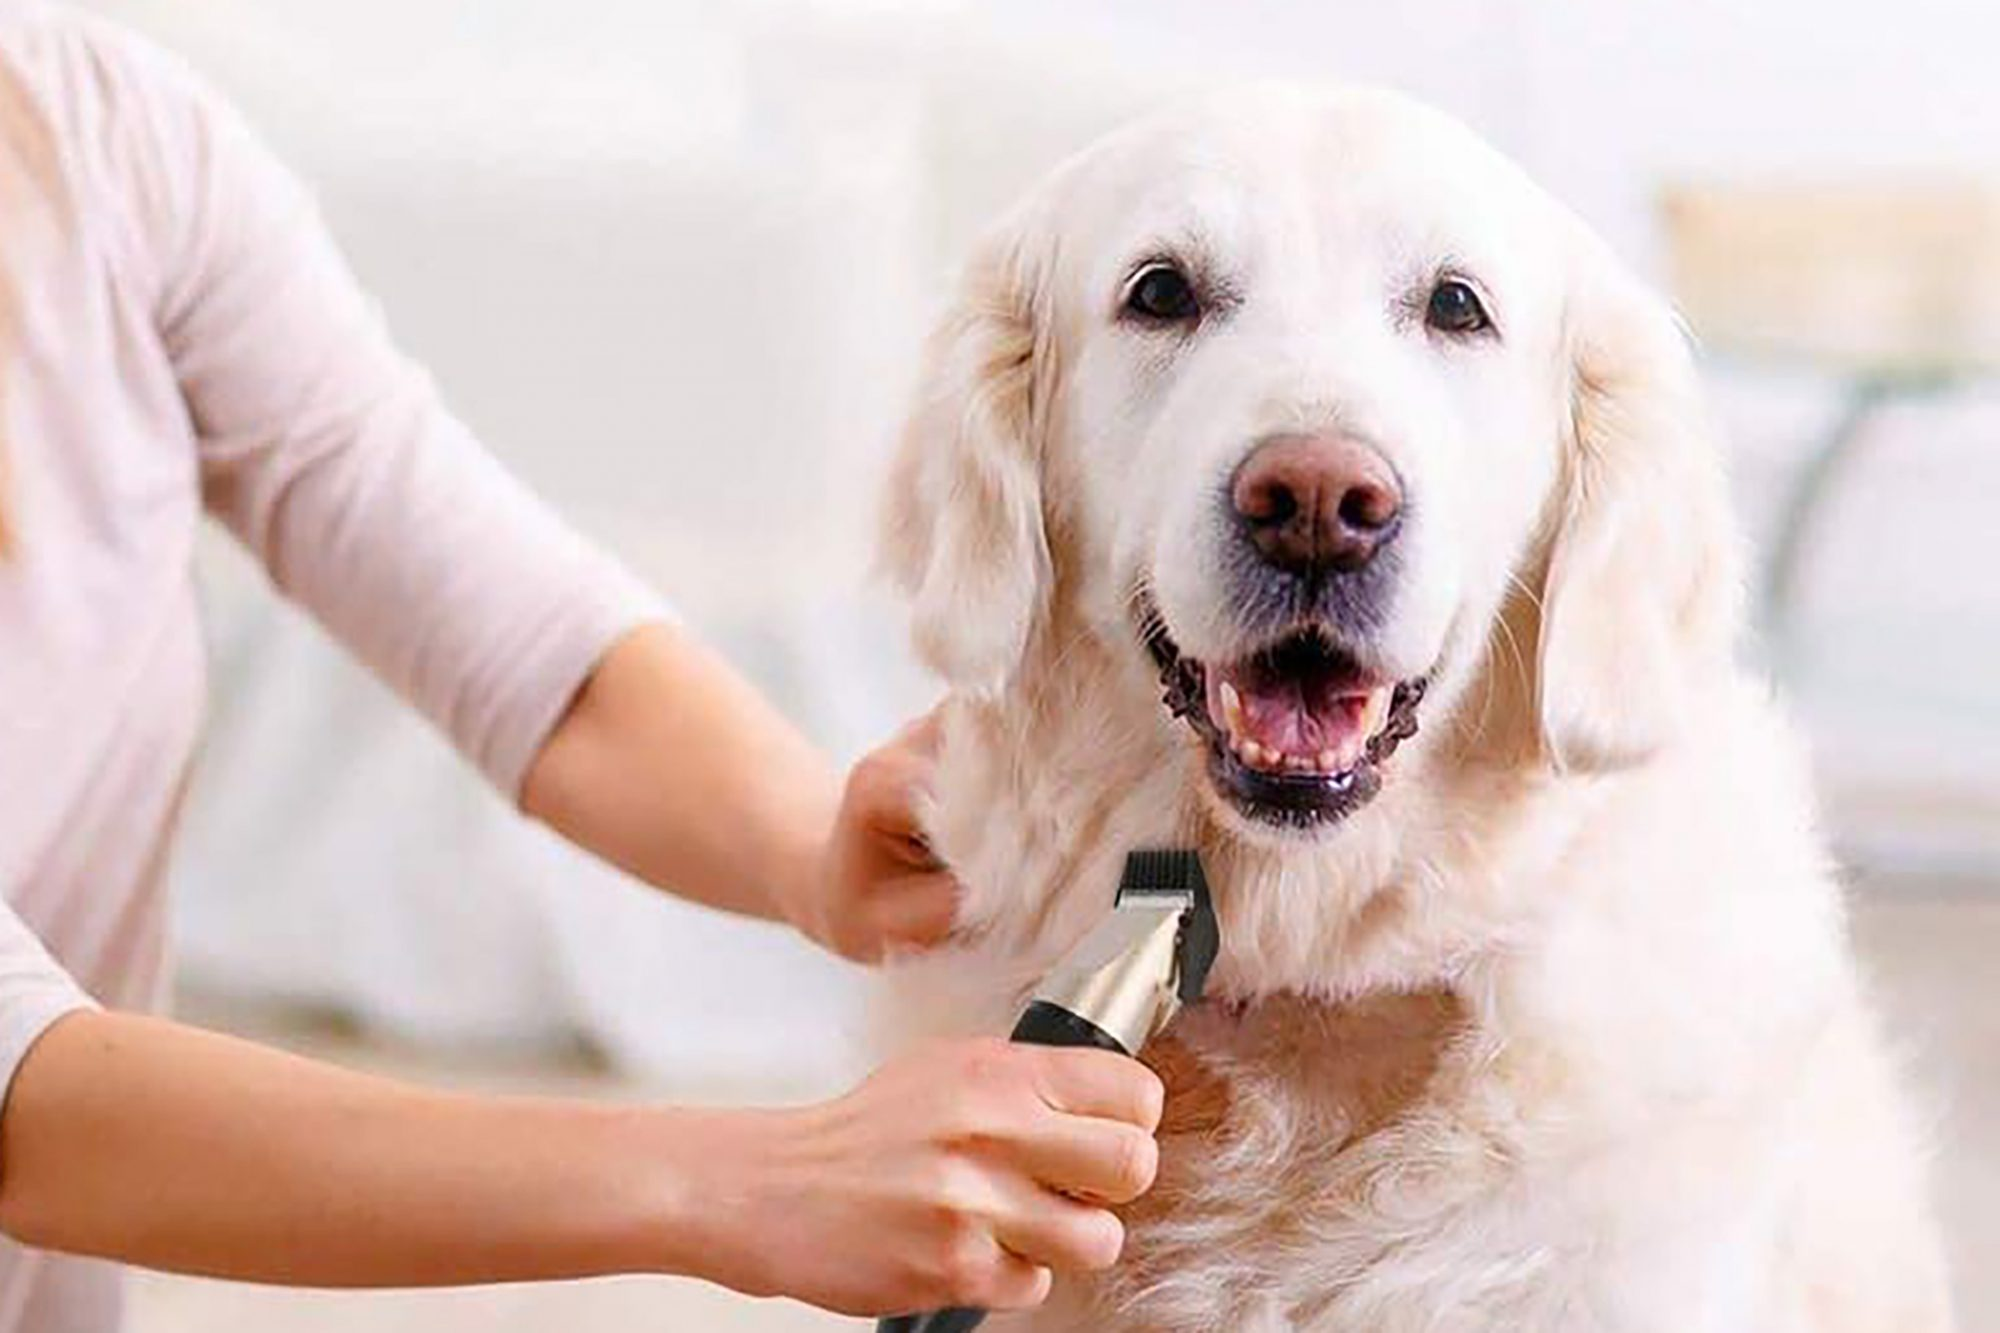 Dog being groomed with clippers